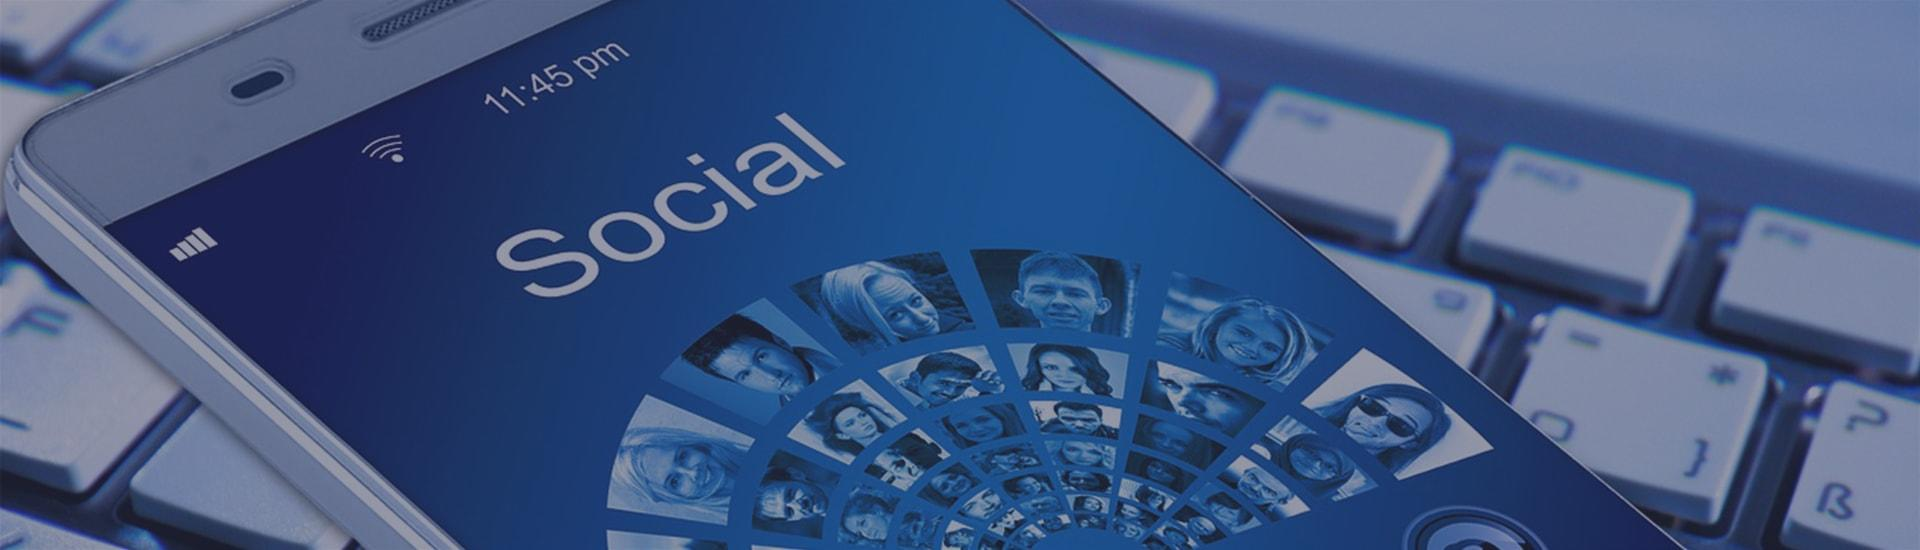 Social networks for small businesses